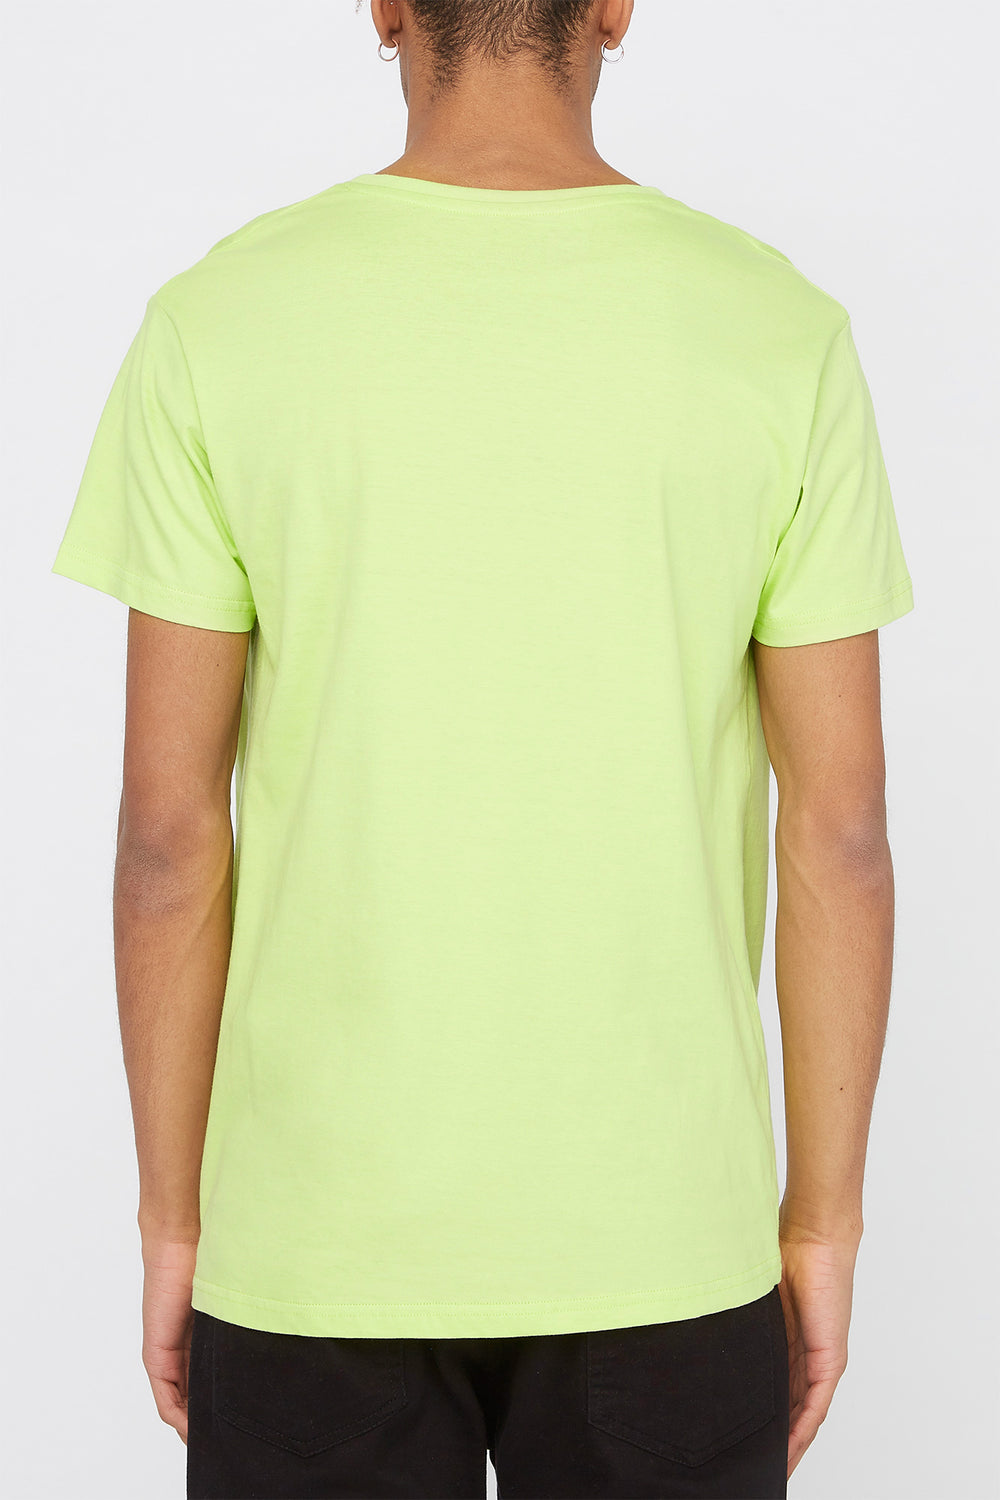 Young & Reckless Mens Electric Floral T-Shirt Neon Green